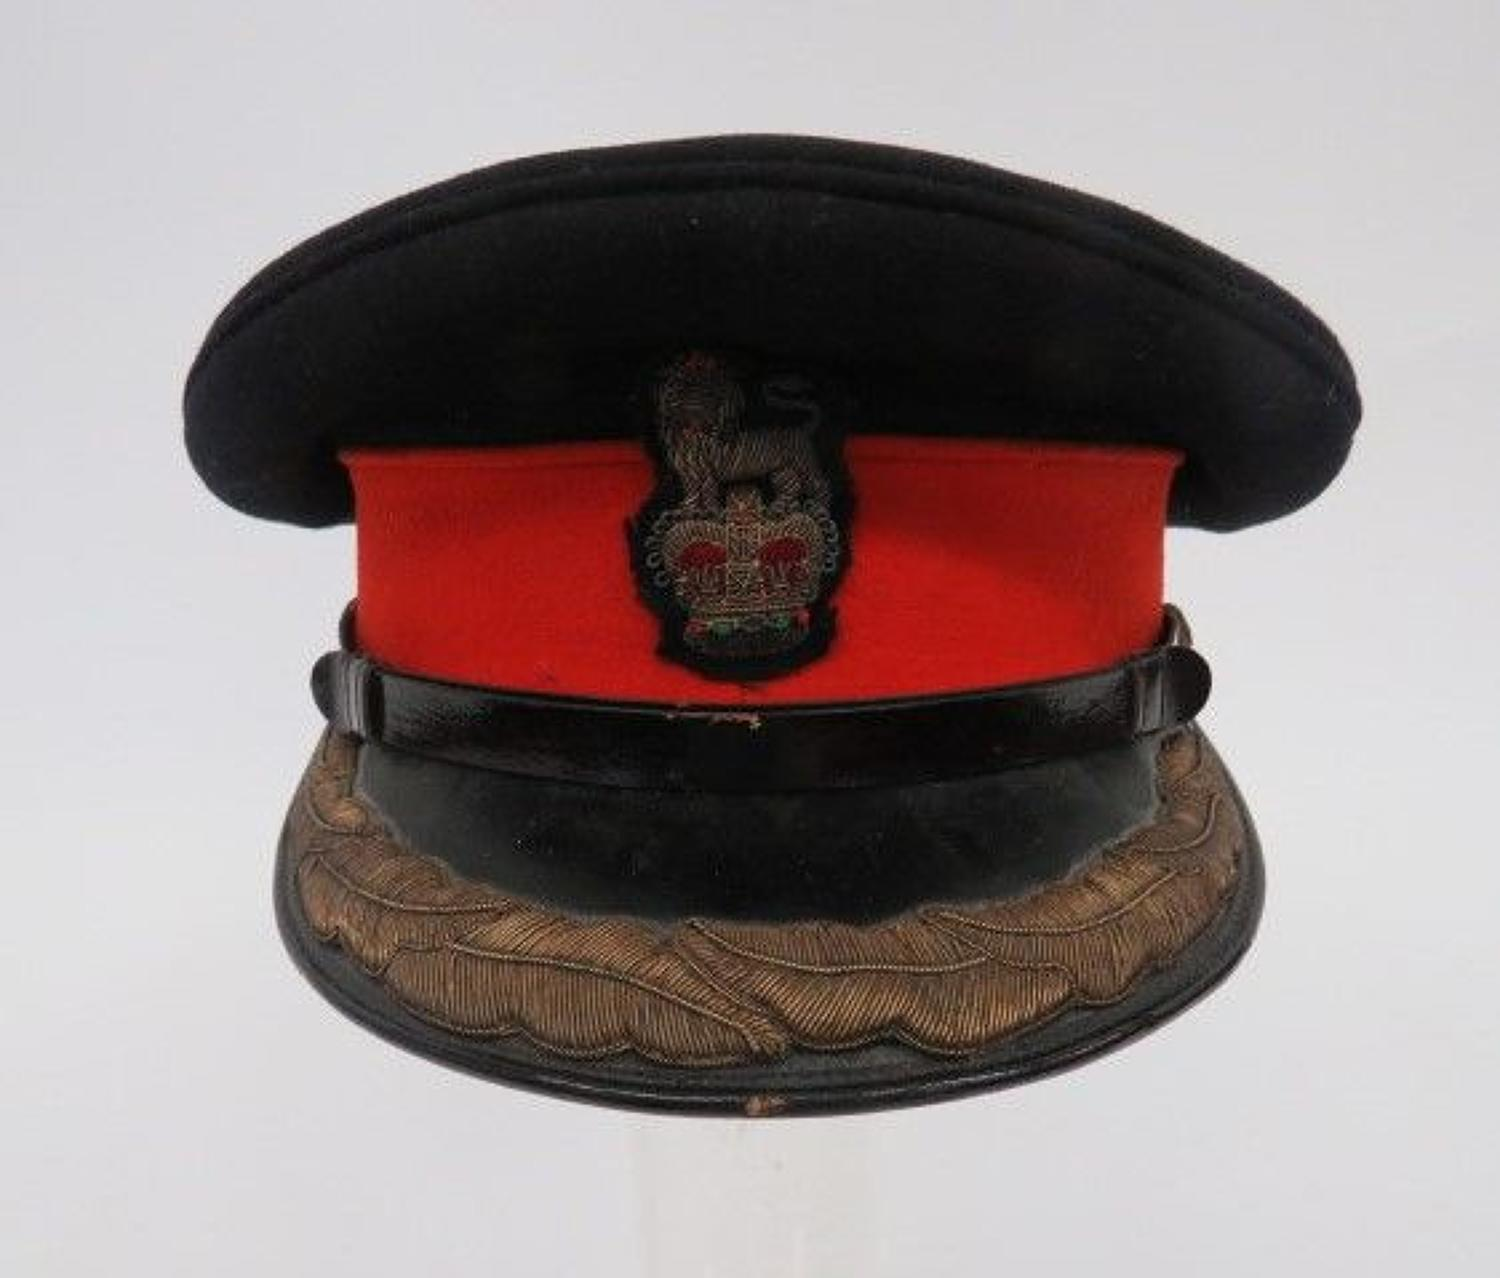 Post 1953 Brigadier Staff Officers Dress Cap